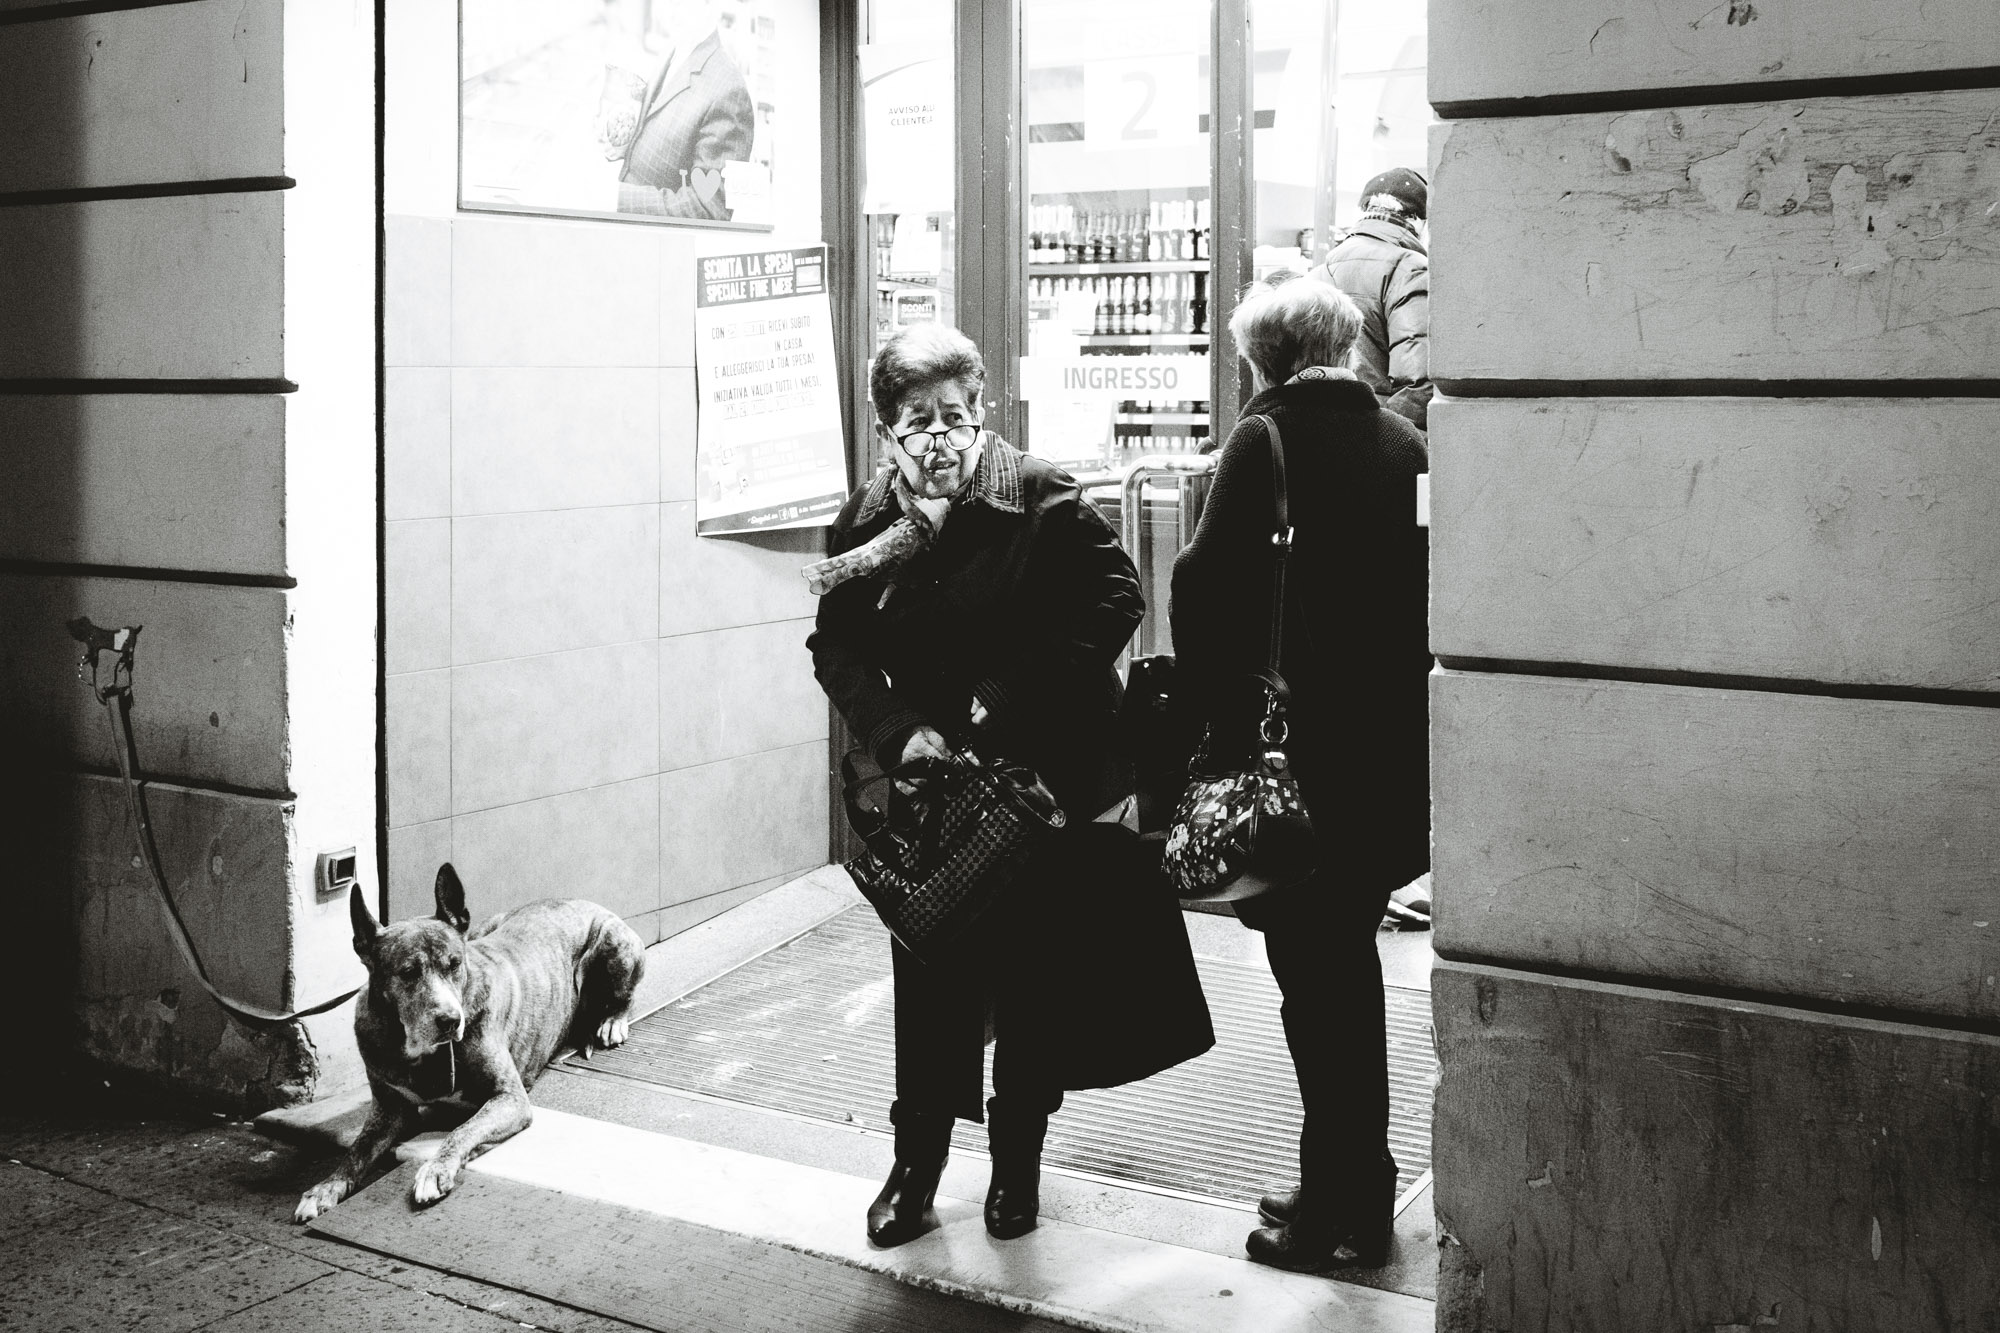 Woman waiting for bus in Rome near a dog